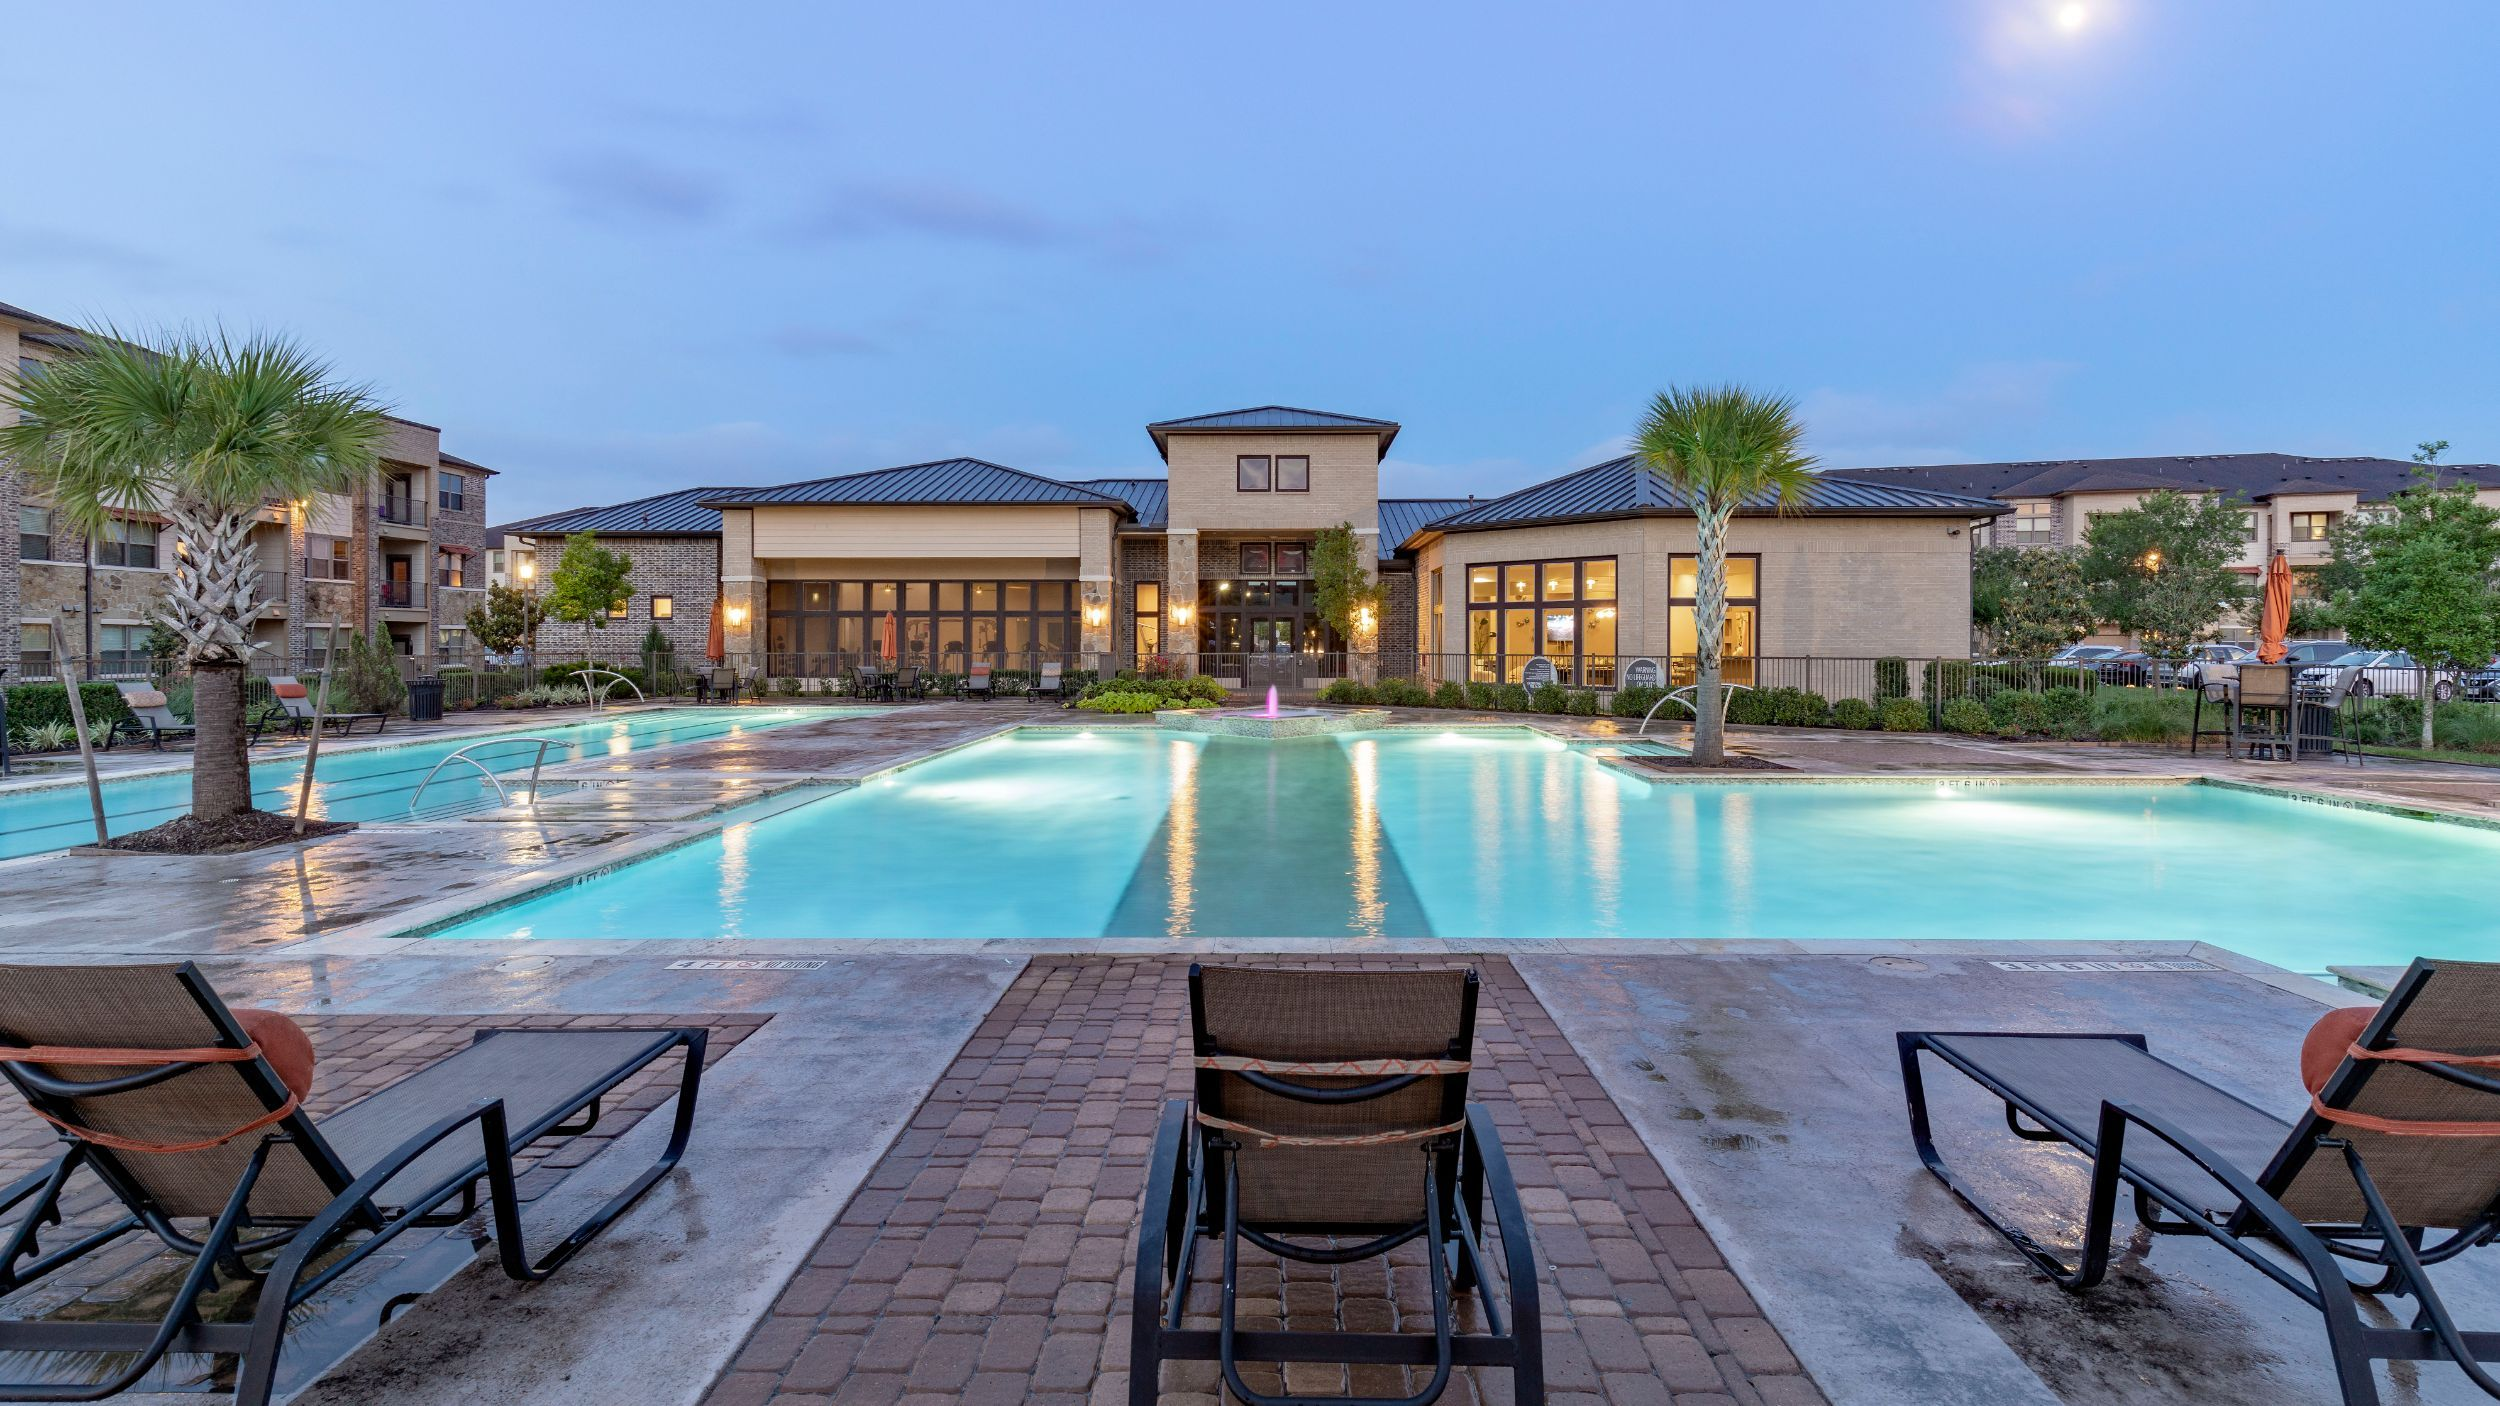 Swimming pool area with seating and view of clubhouse